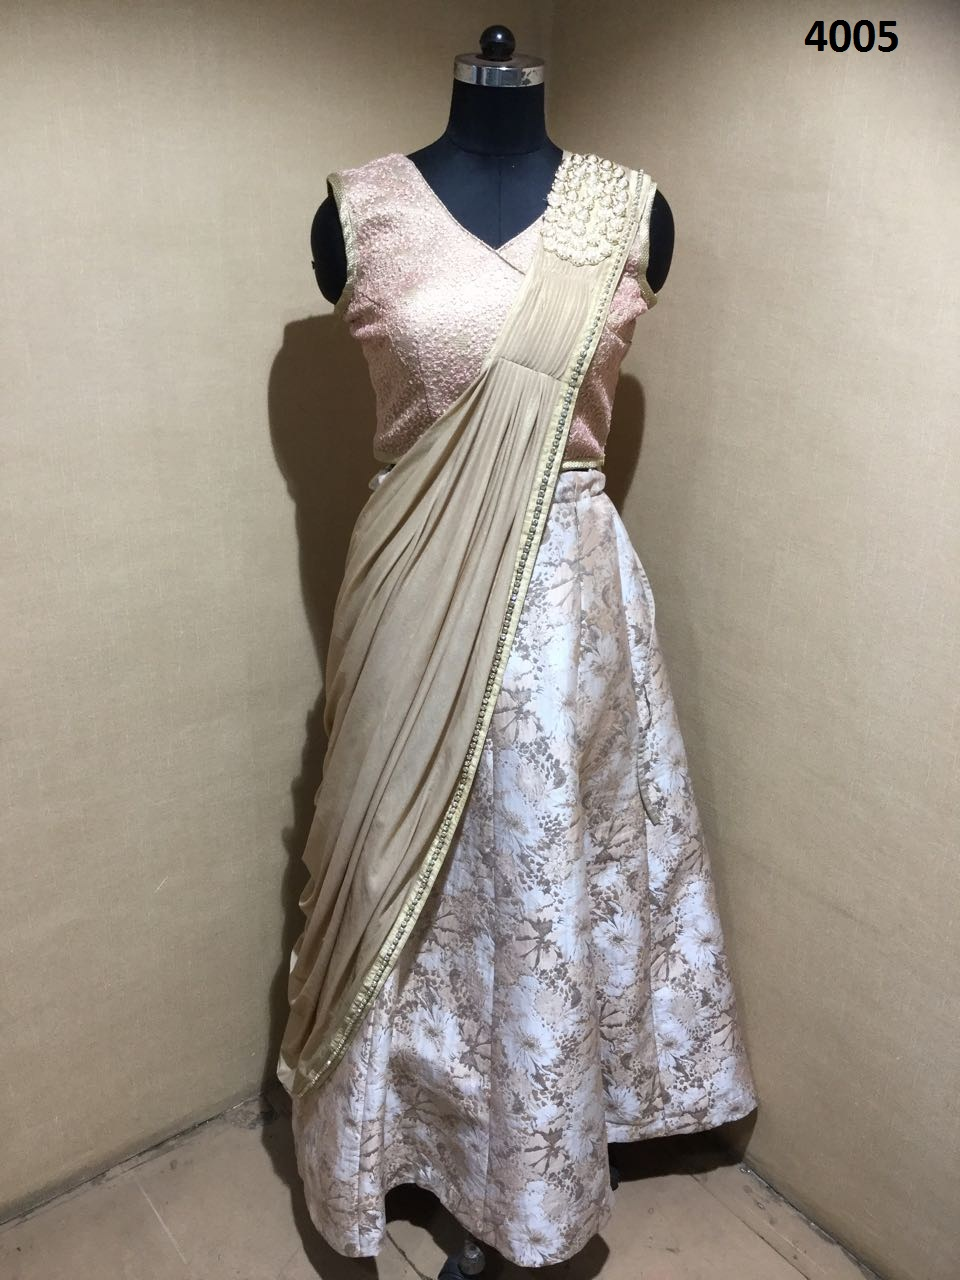 Ethnical customise gowns by fashid wholesale 4001 to 4007 for Designer wedding dresses at discount prices